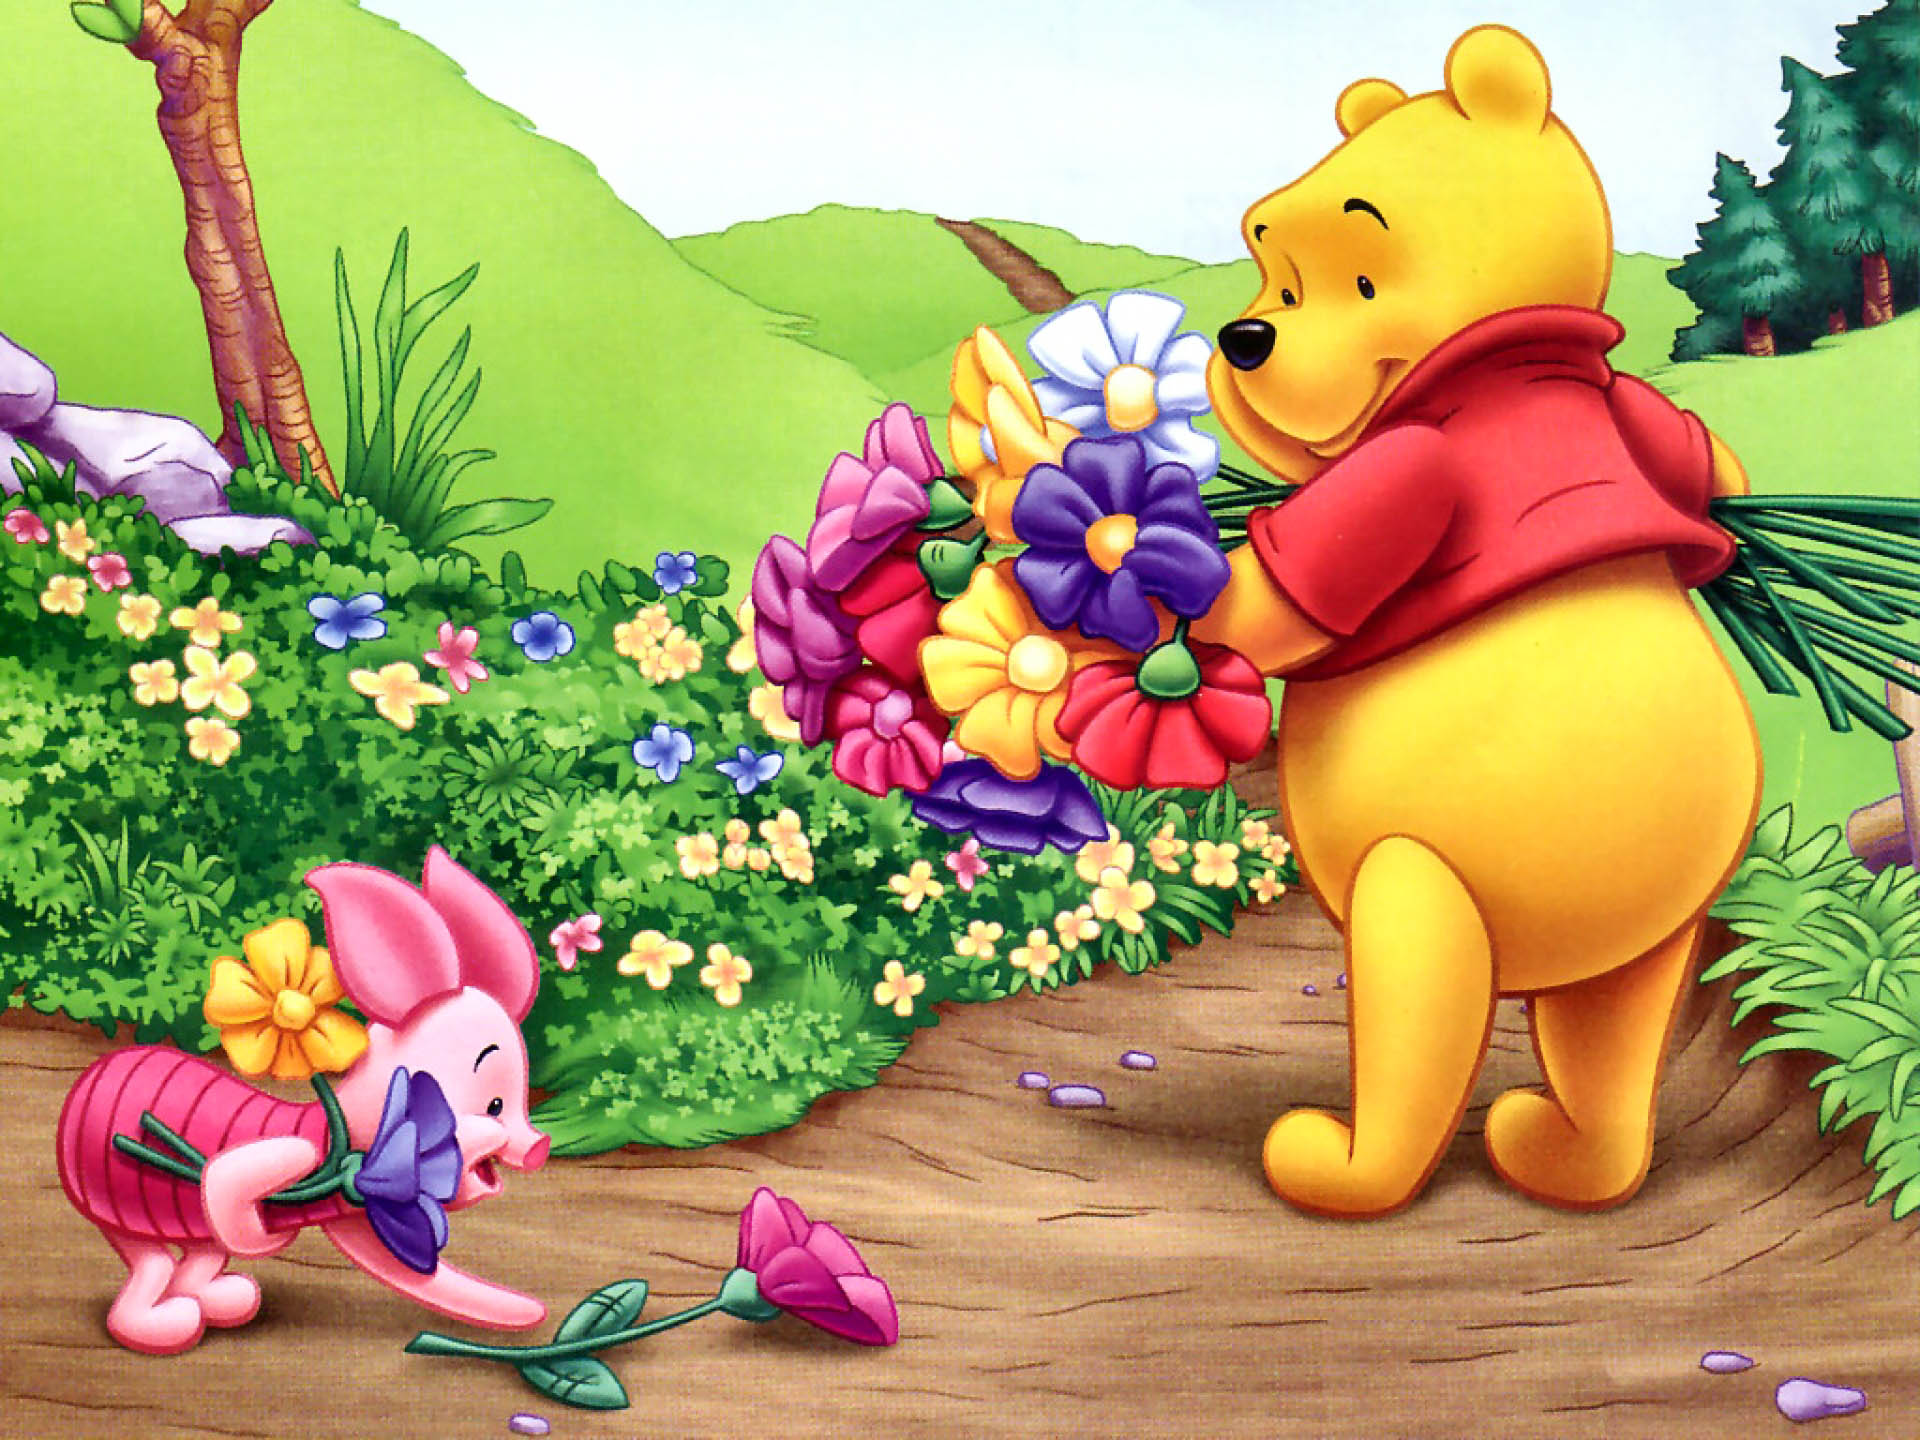 winnie the pooh beautiful hd wallpapers all hd wallpapers. Black Bedroom Furniture Sets. Home Design Ideas